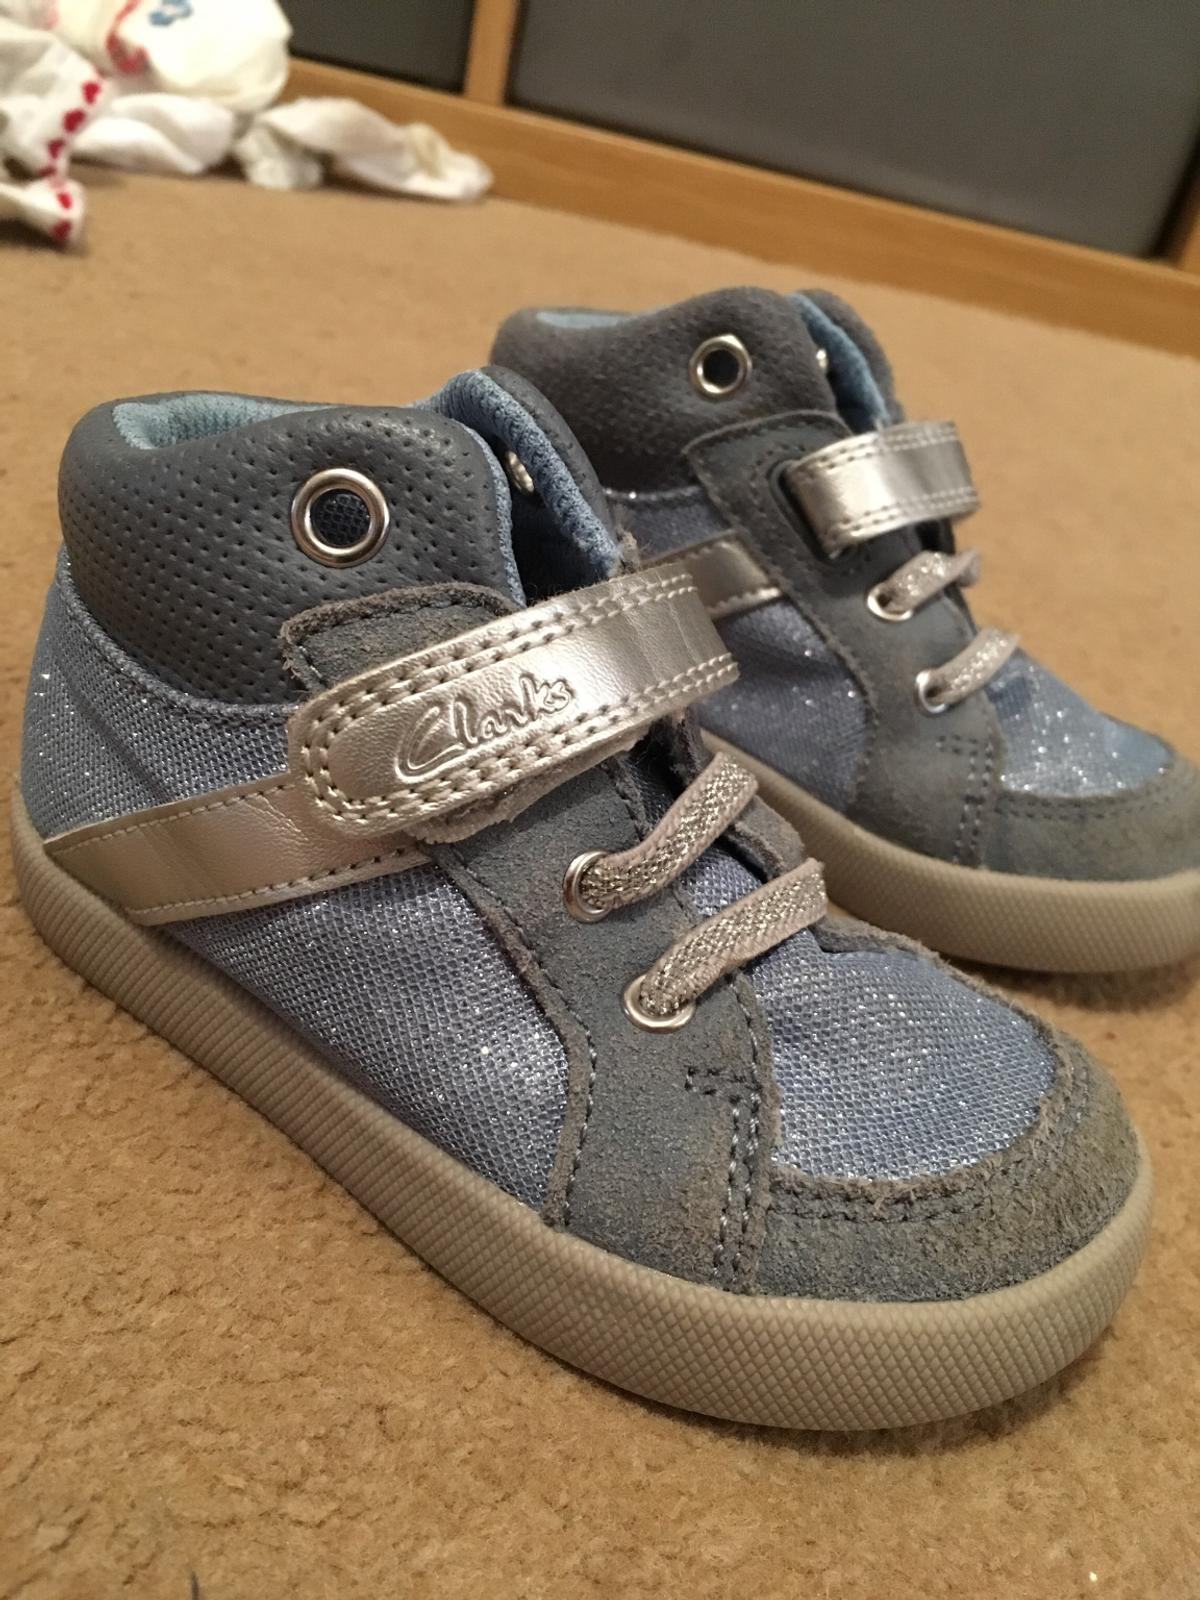 7063736dad0f Clarks First Shoes 5.5 F sparkly blue in KT15 Runnymede for £5.00 ...